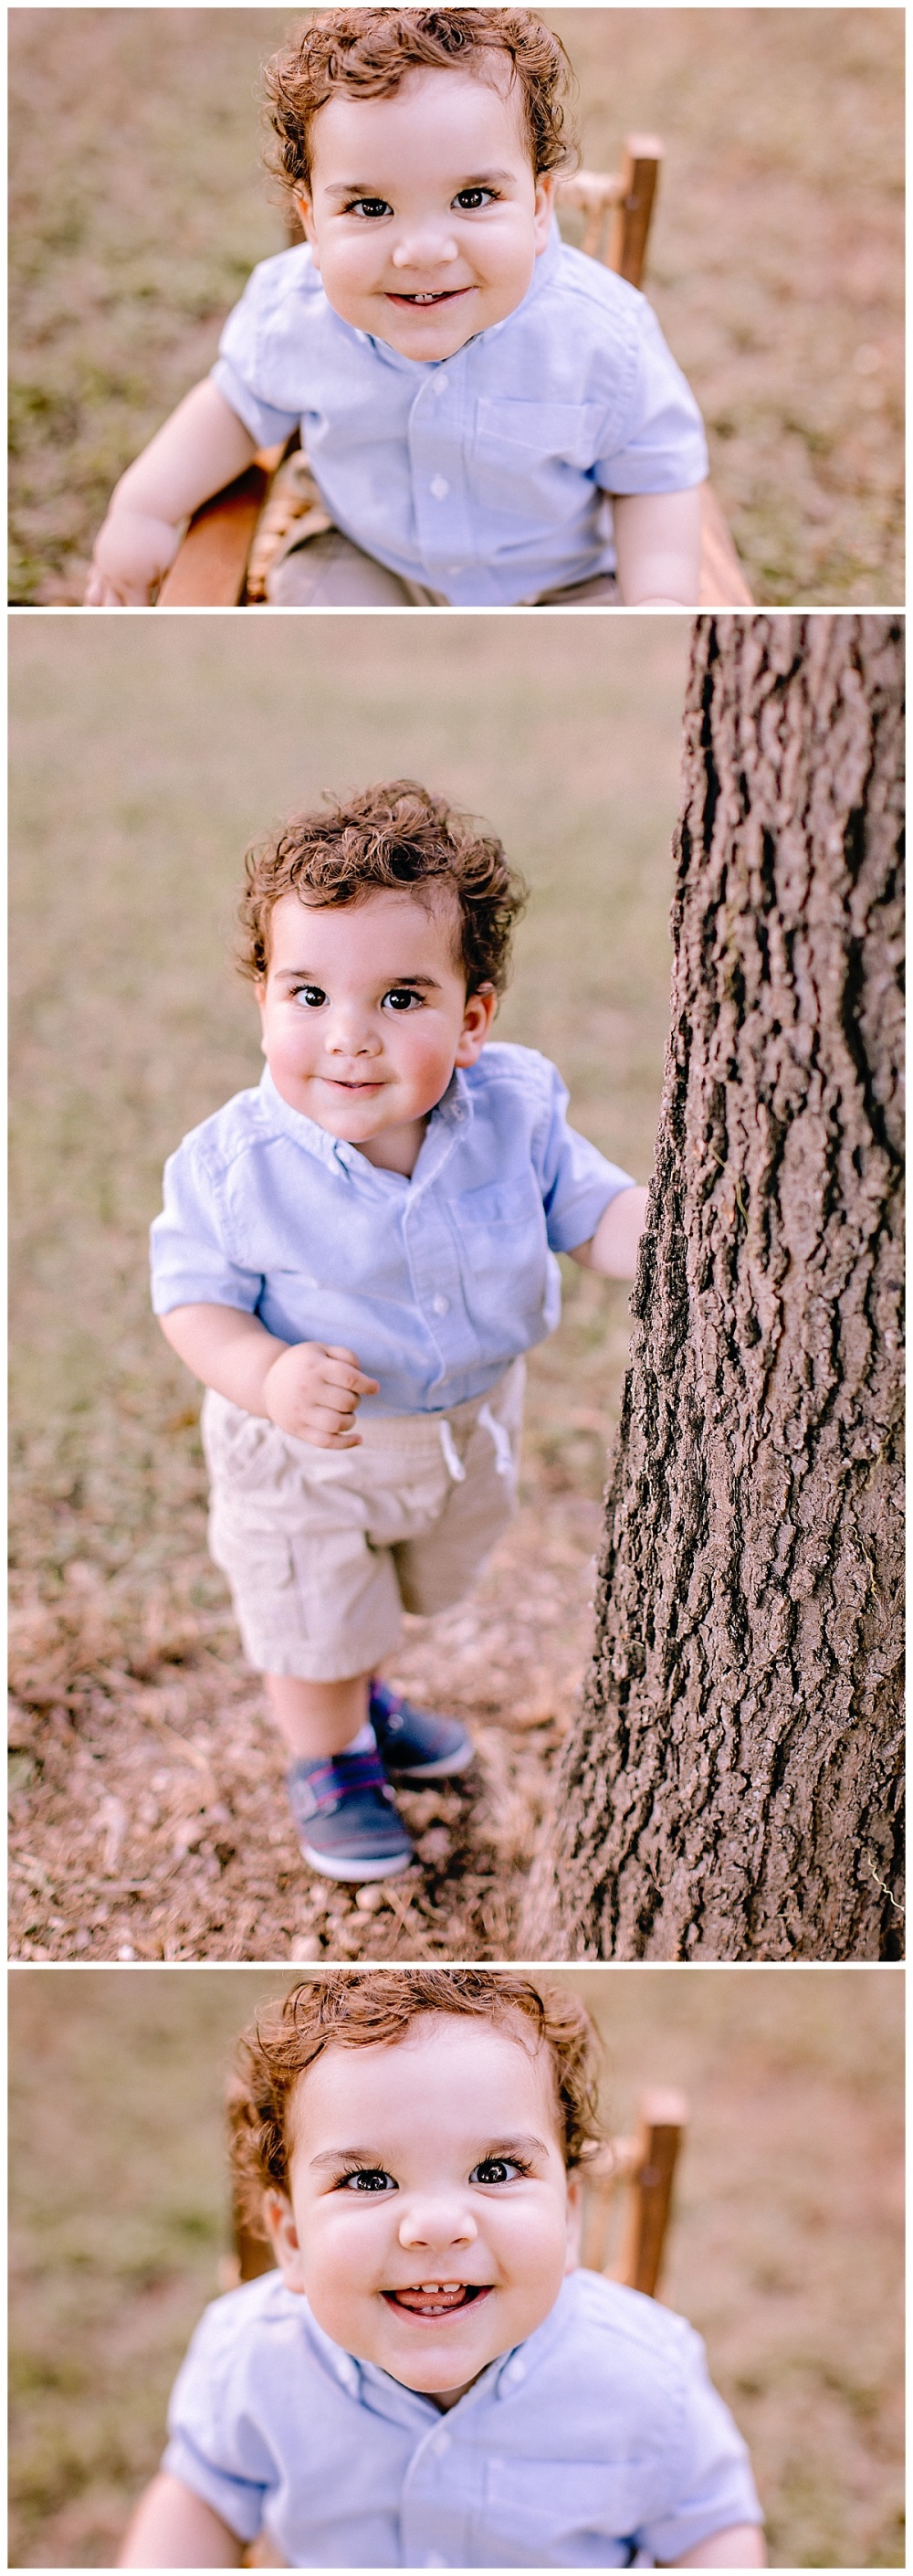 Carly-Barton-Photography-Birthday-Session-Schertz-Texas-Veterans-Park-1-year-family-photos-James_0001.jpg